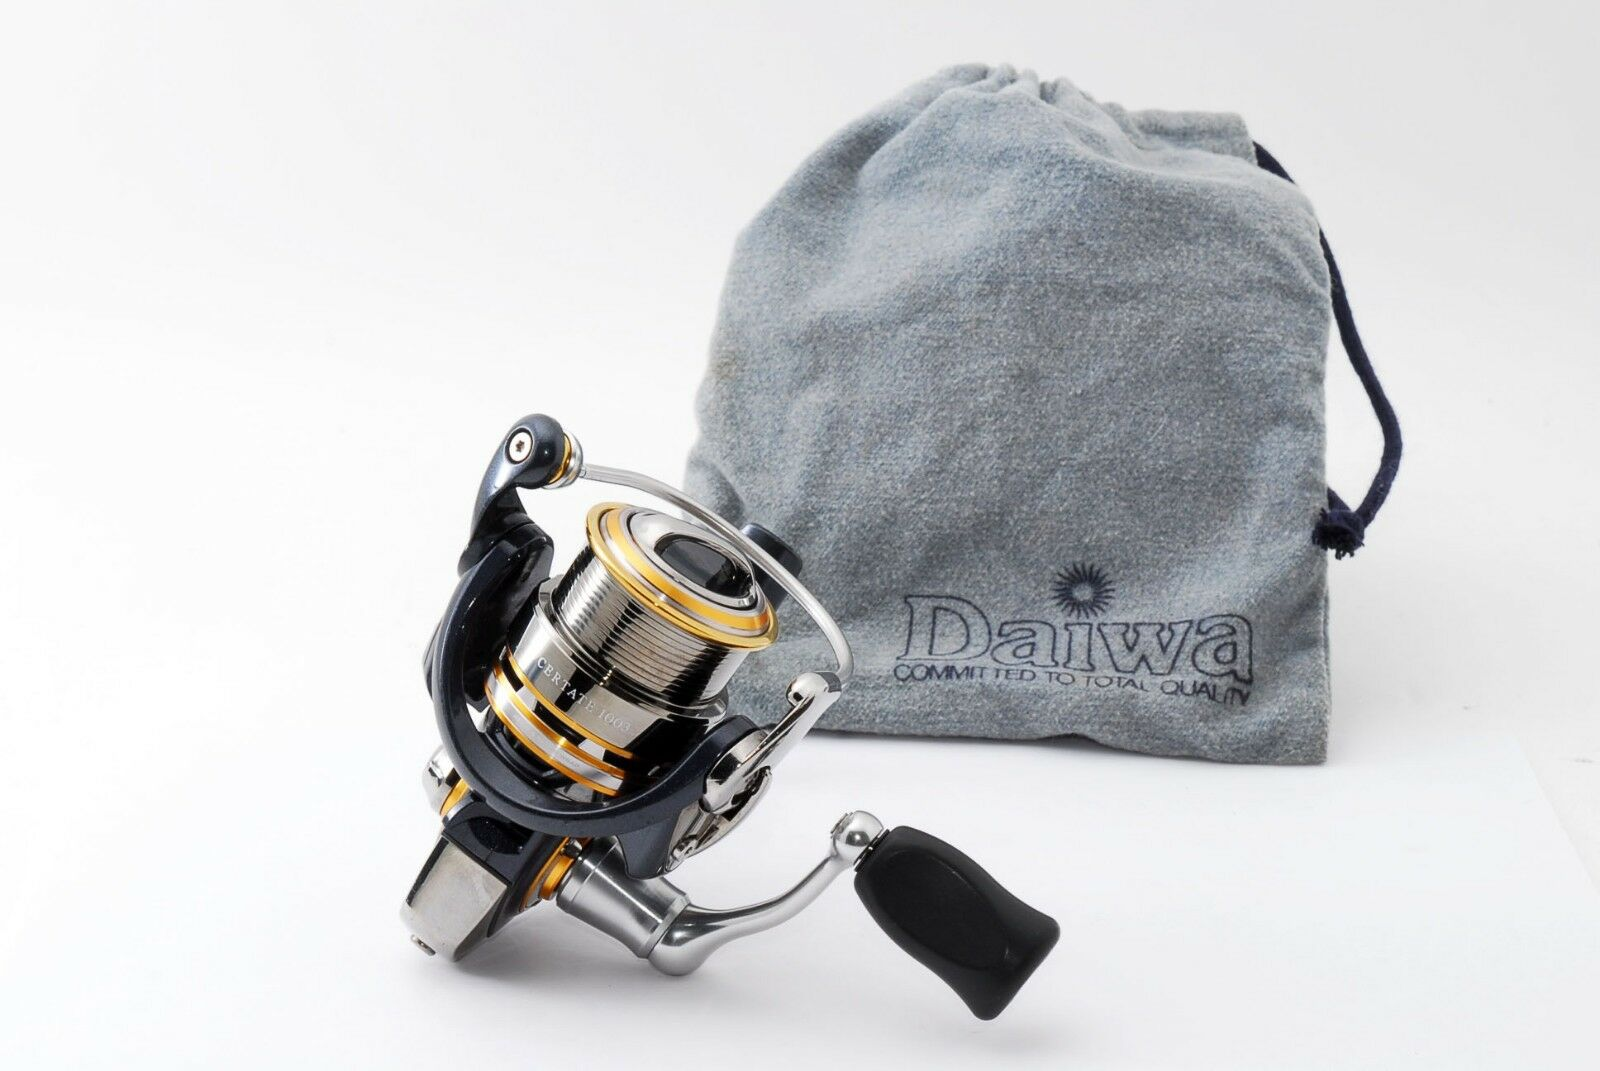 Excellent+++ Daiwa 10 CERTATE 1003 Spinning Reel  337973  store sale outlet